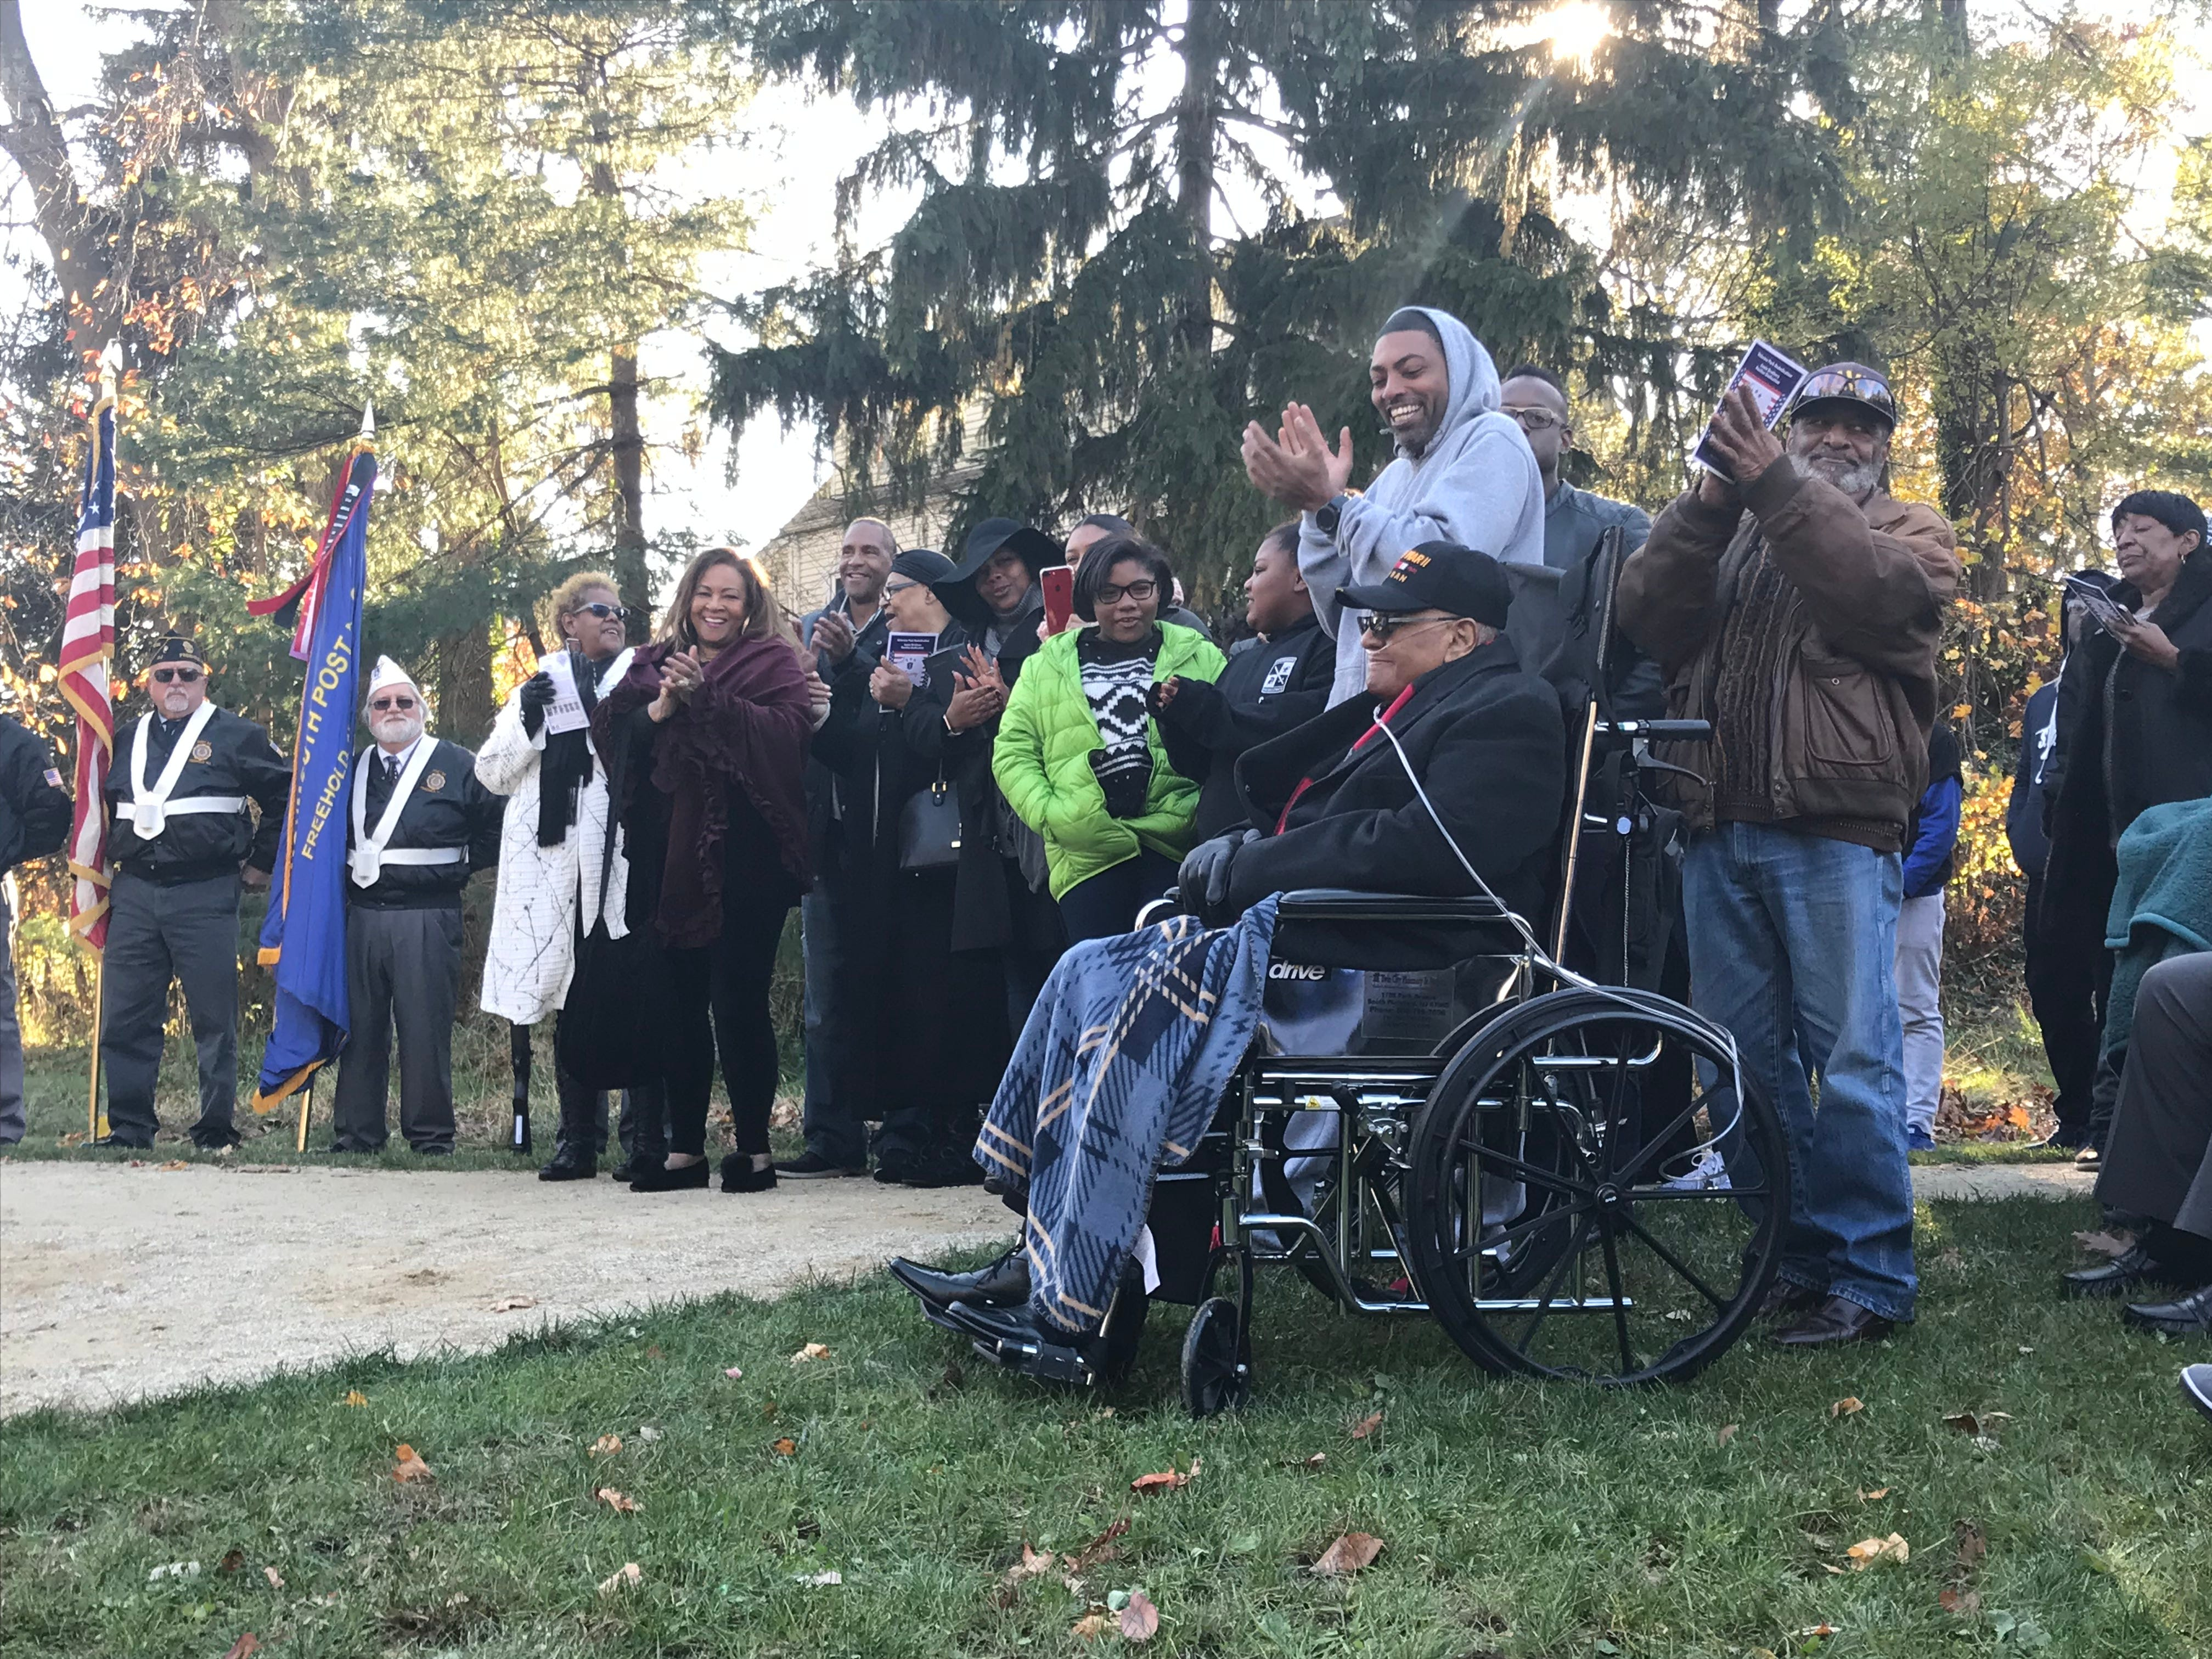 """A crowd of more than 100 people clap for Bigerton """"Buddy"""" Lewis, a private in the 1317th Engineer General Service Regiment in World War II, on Sunday, Nov. 11, 2018 at Veterans Park in Freehold Borough. A pavilion at the park was named after Lewis and his five late brothers, who all served in the war."""